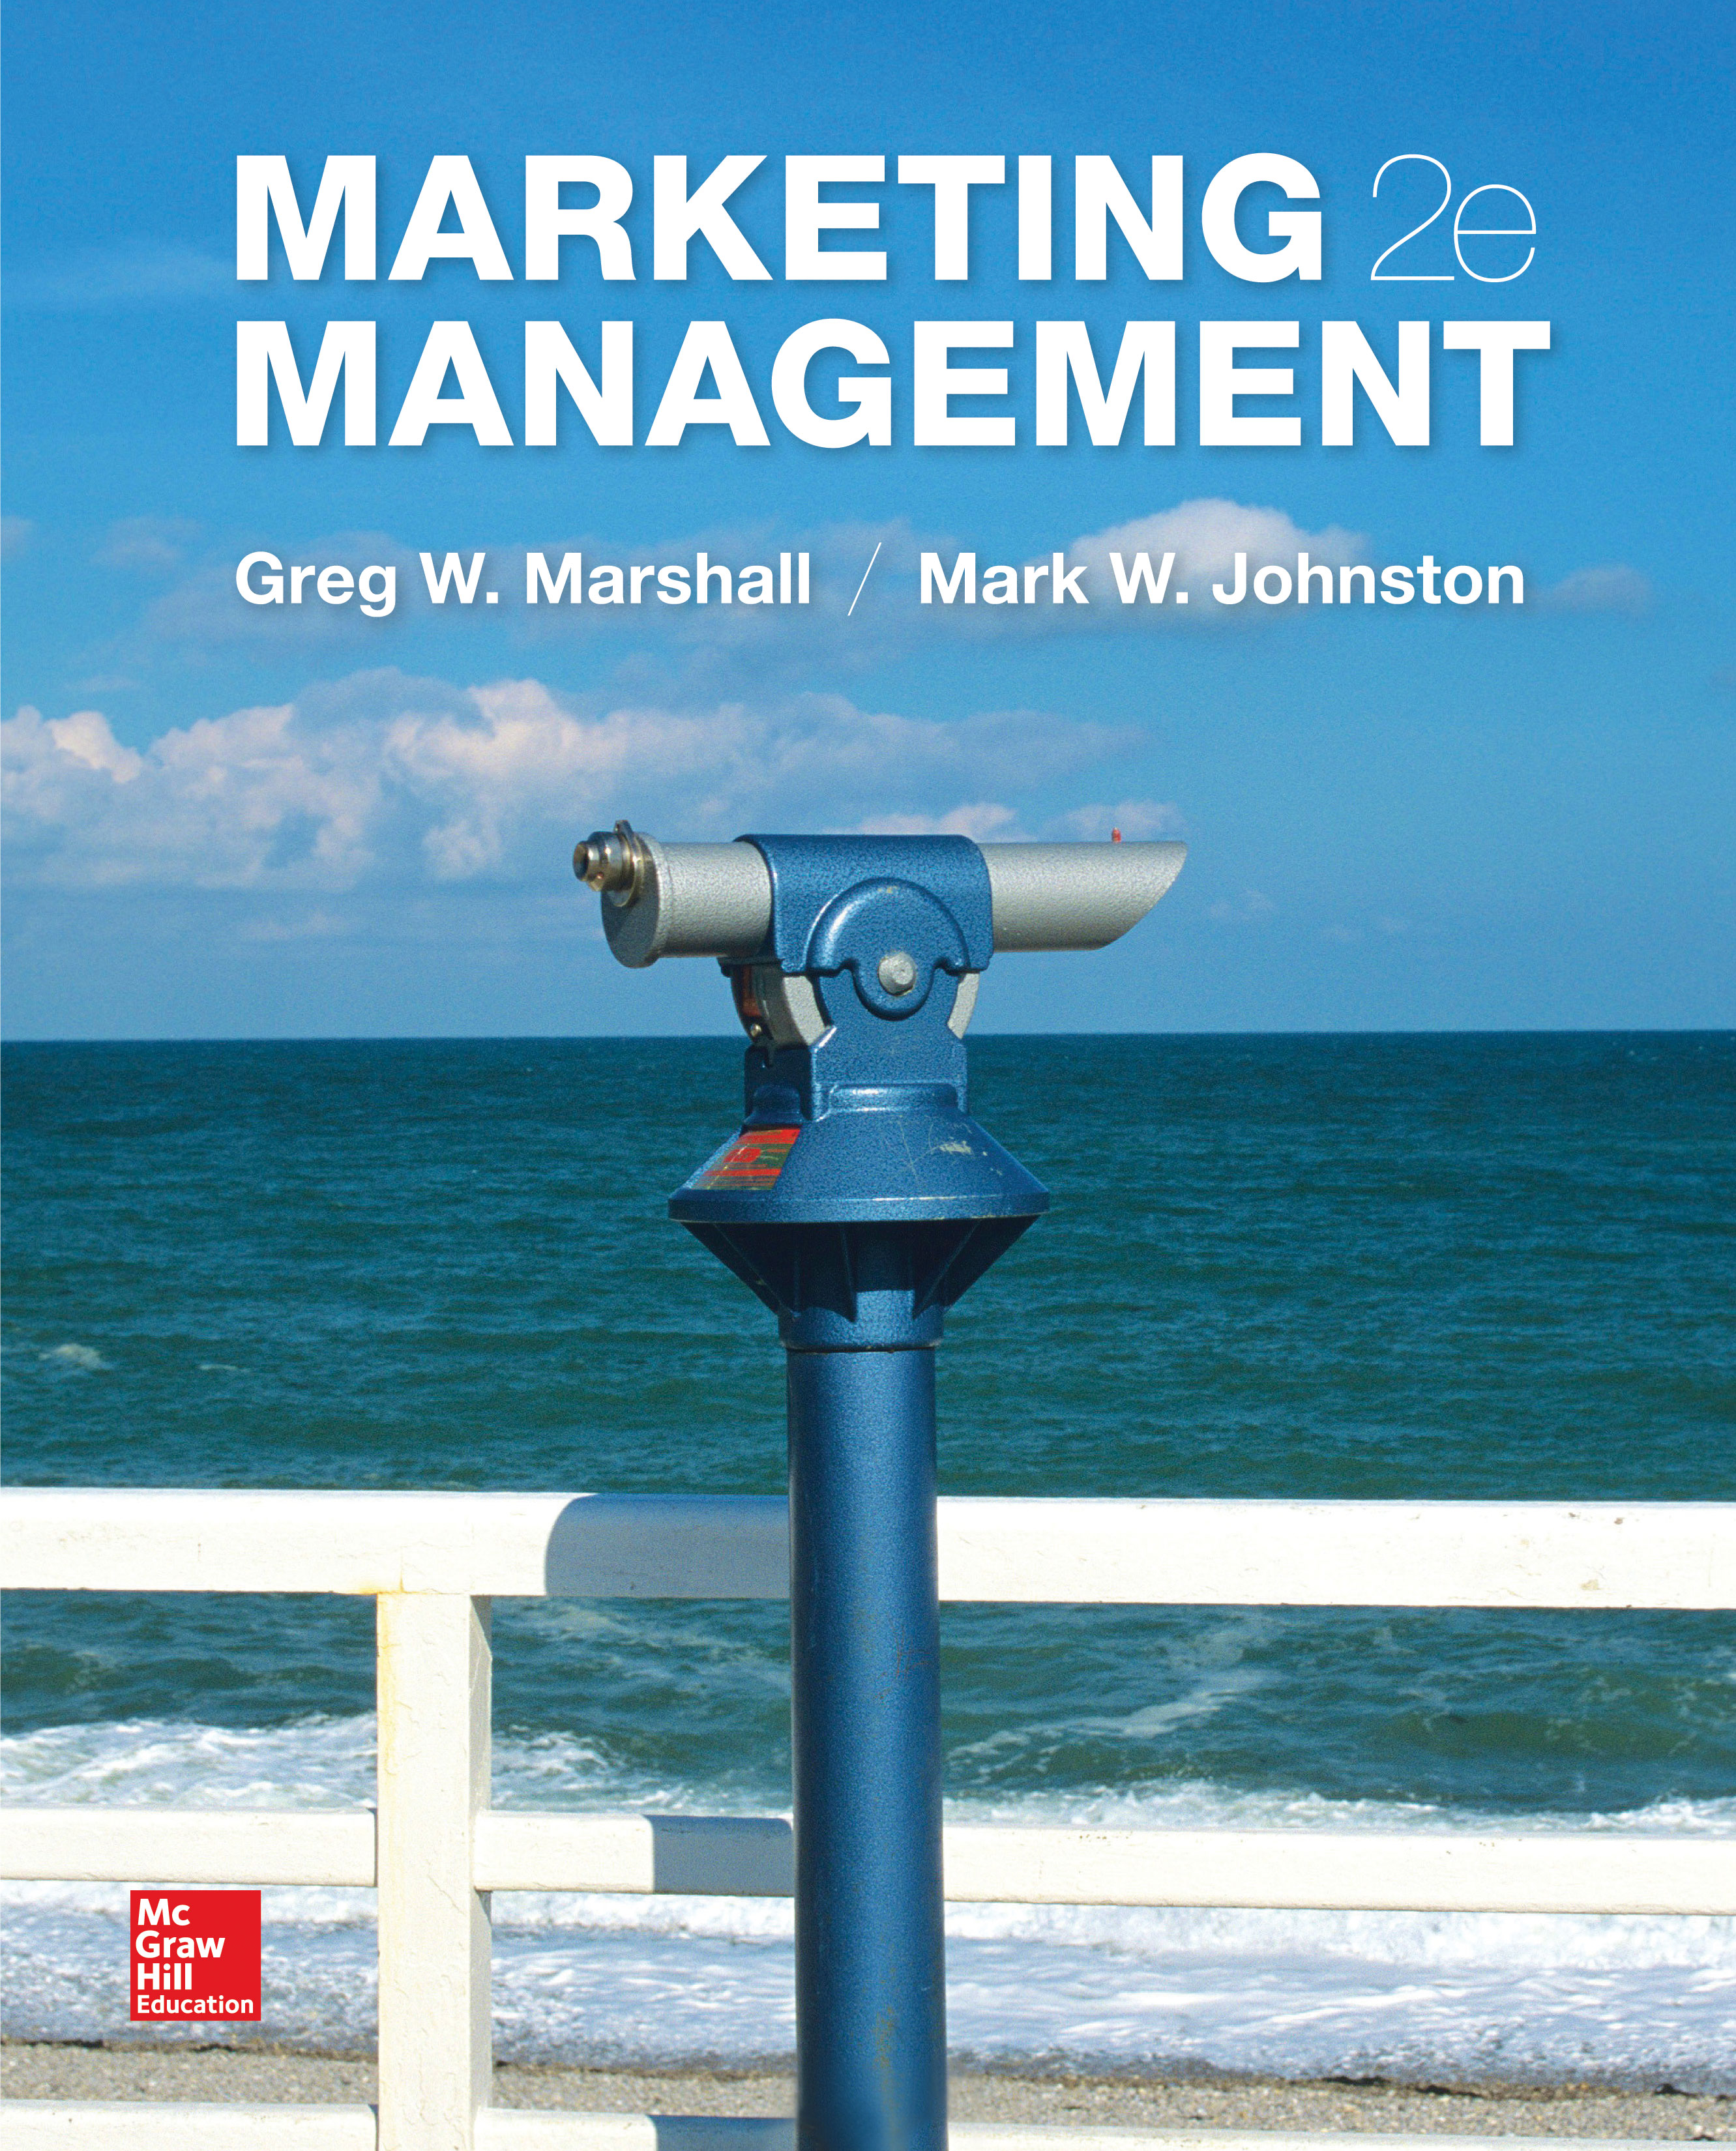 Marketing Management 2e Textbook Cover